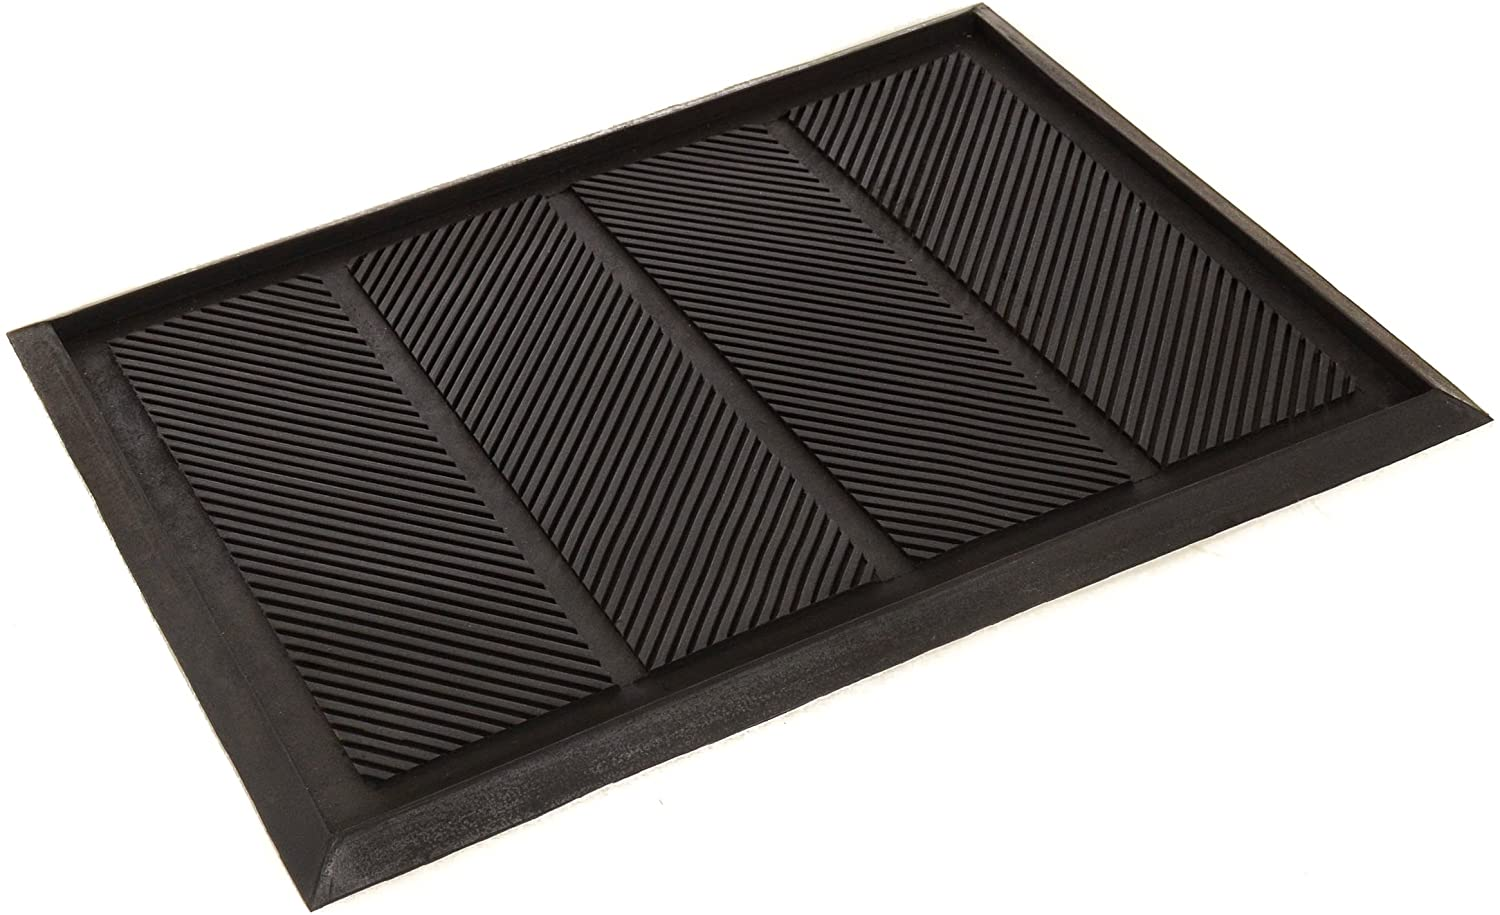 Milliard Large Rubber Boot Tray and Mudroom Doormat (17.5 inches X 25.5 inches)